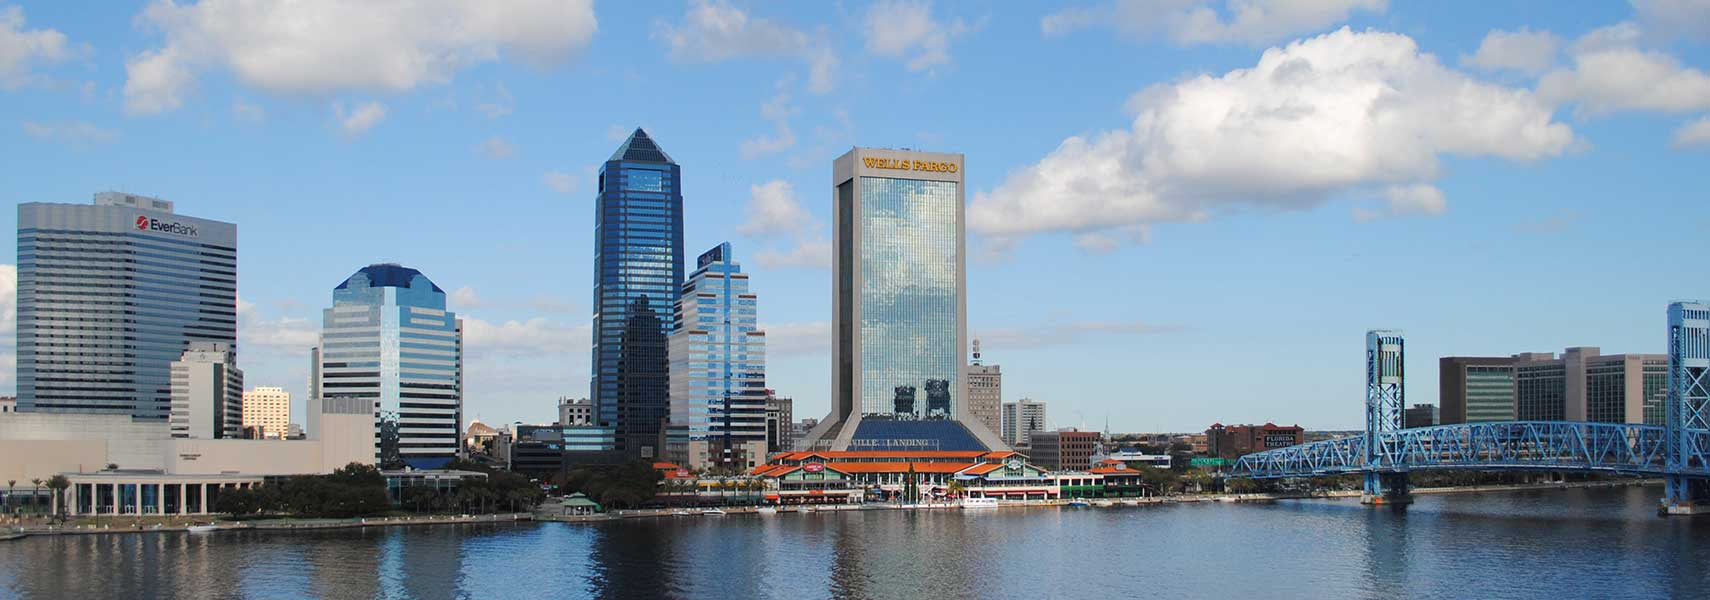 where is jacksonville fl where is jacksonville fl located in